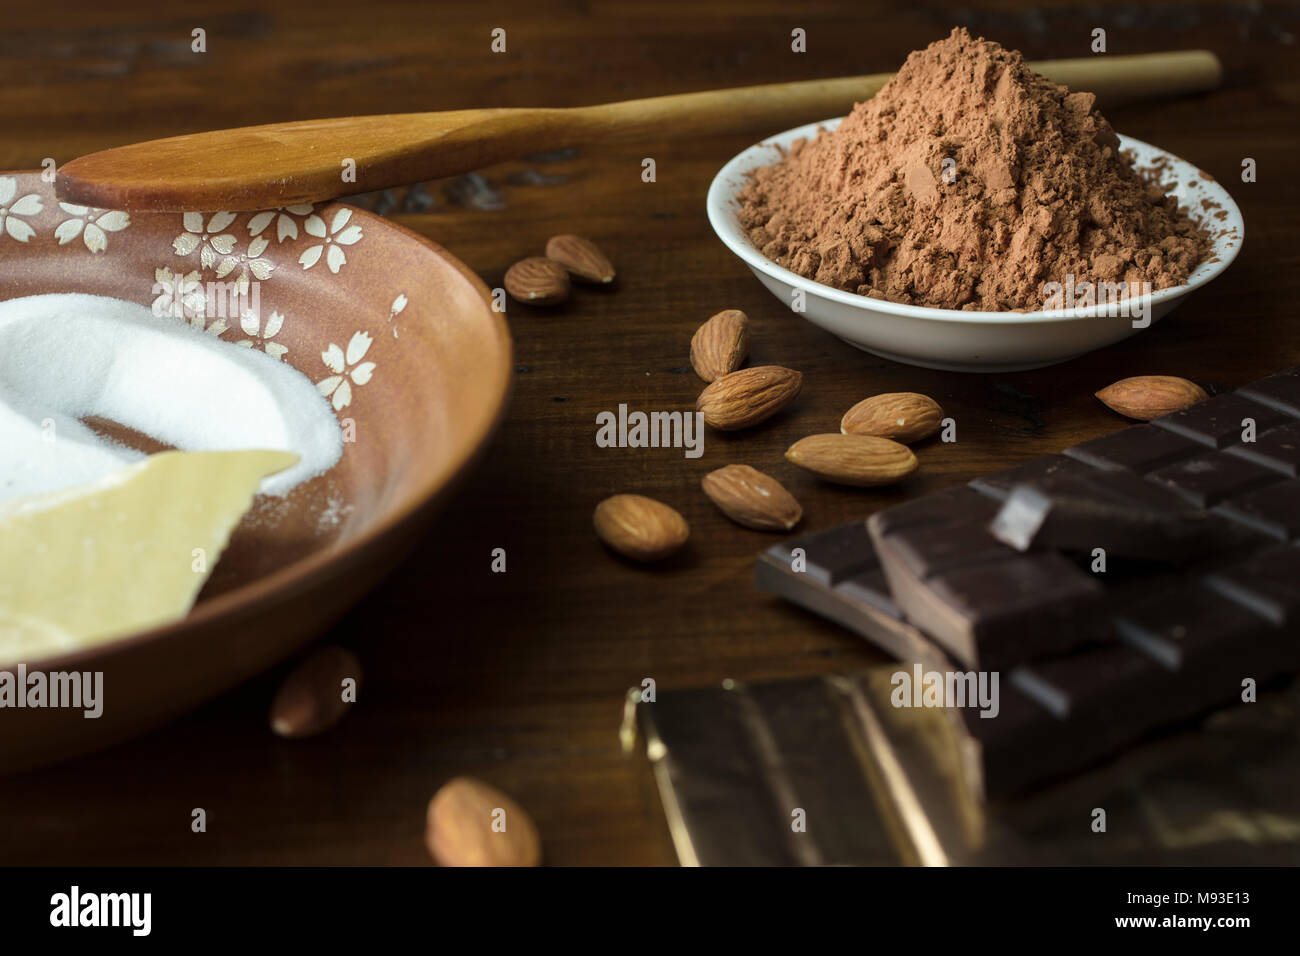 Preparation of dark chocolate bars made from scratch using cacao butter, sugar, cocoa powder and almonds Stock Photo